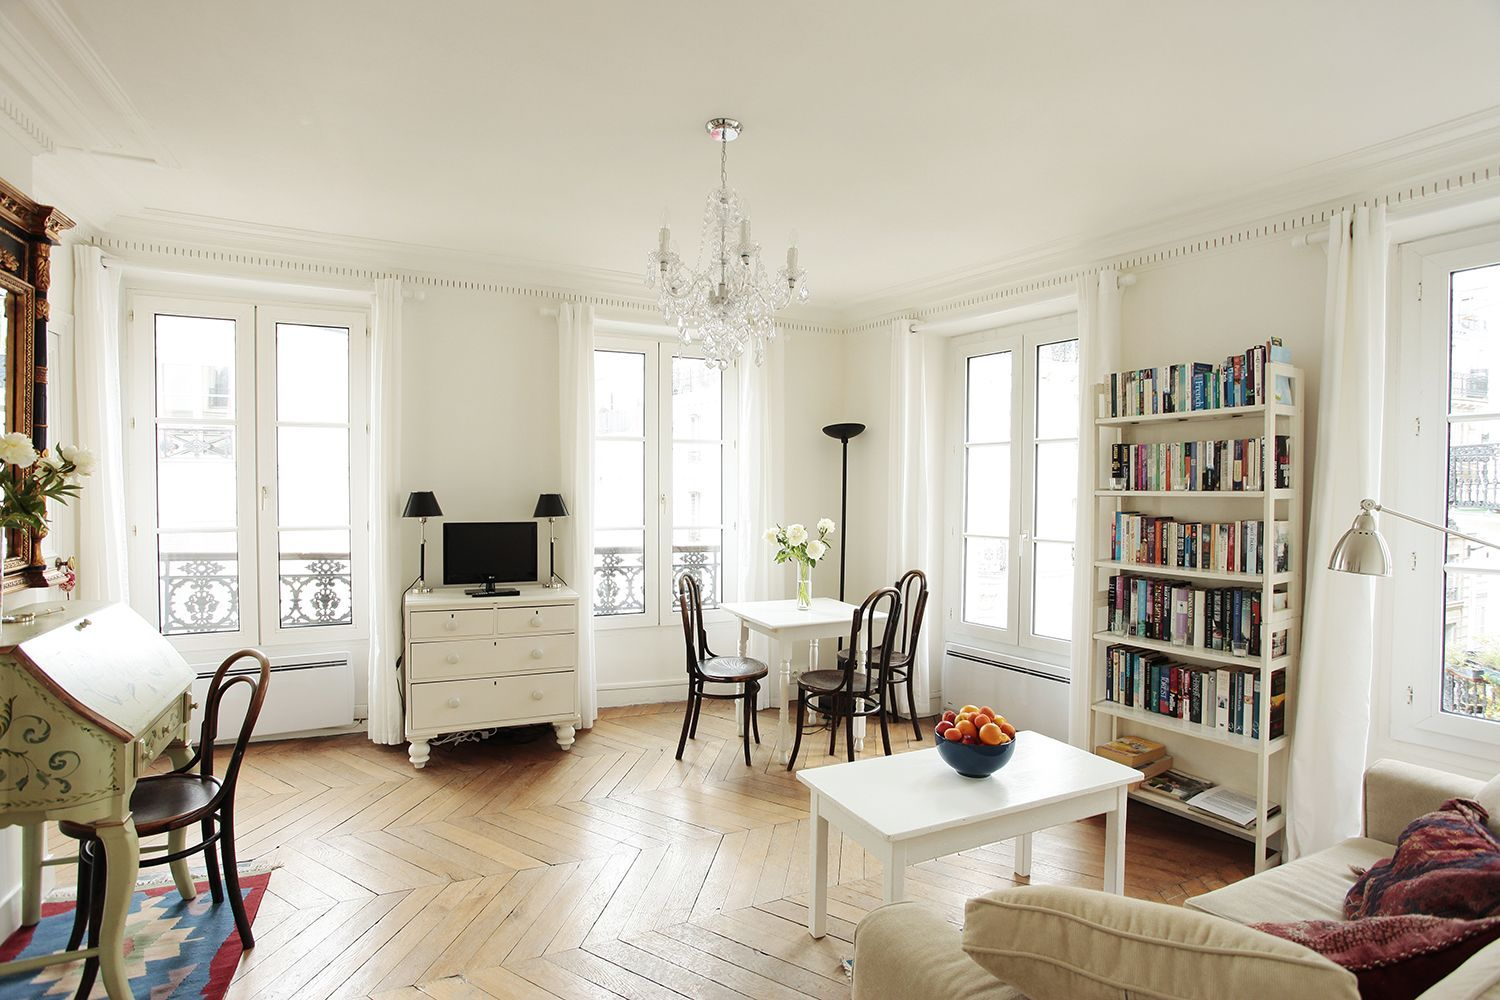 Perfectly paris vacation apartments one bedroom apartments for Appart hotel 5eme arrondissement paris